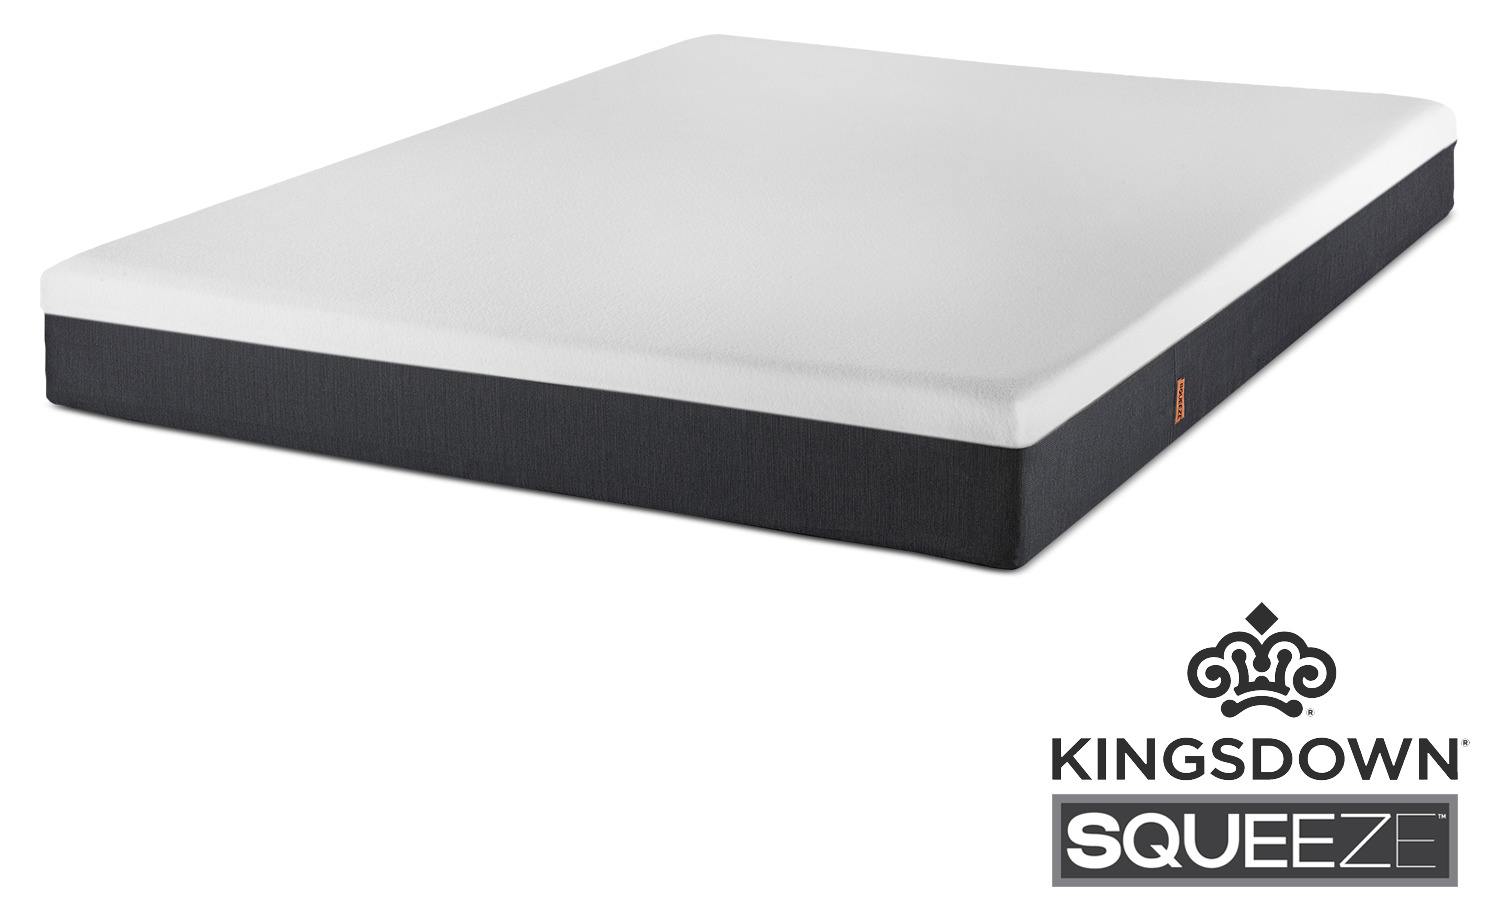 "Mattresses and Bedding - Squeeze Queen 7"" Mattress-in-a-Box by Kingsdown"